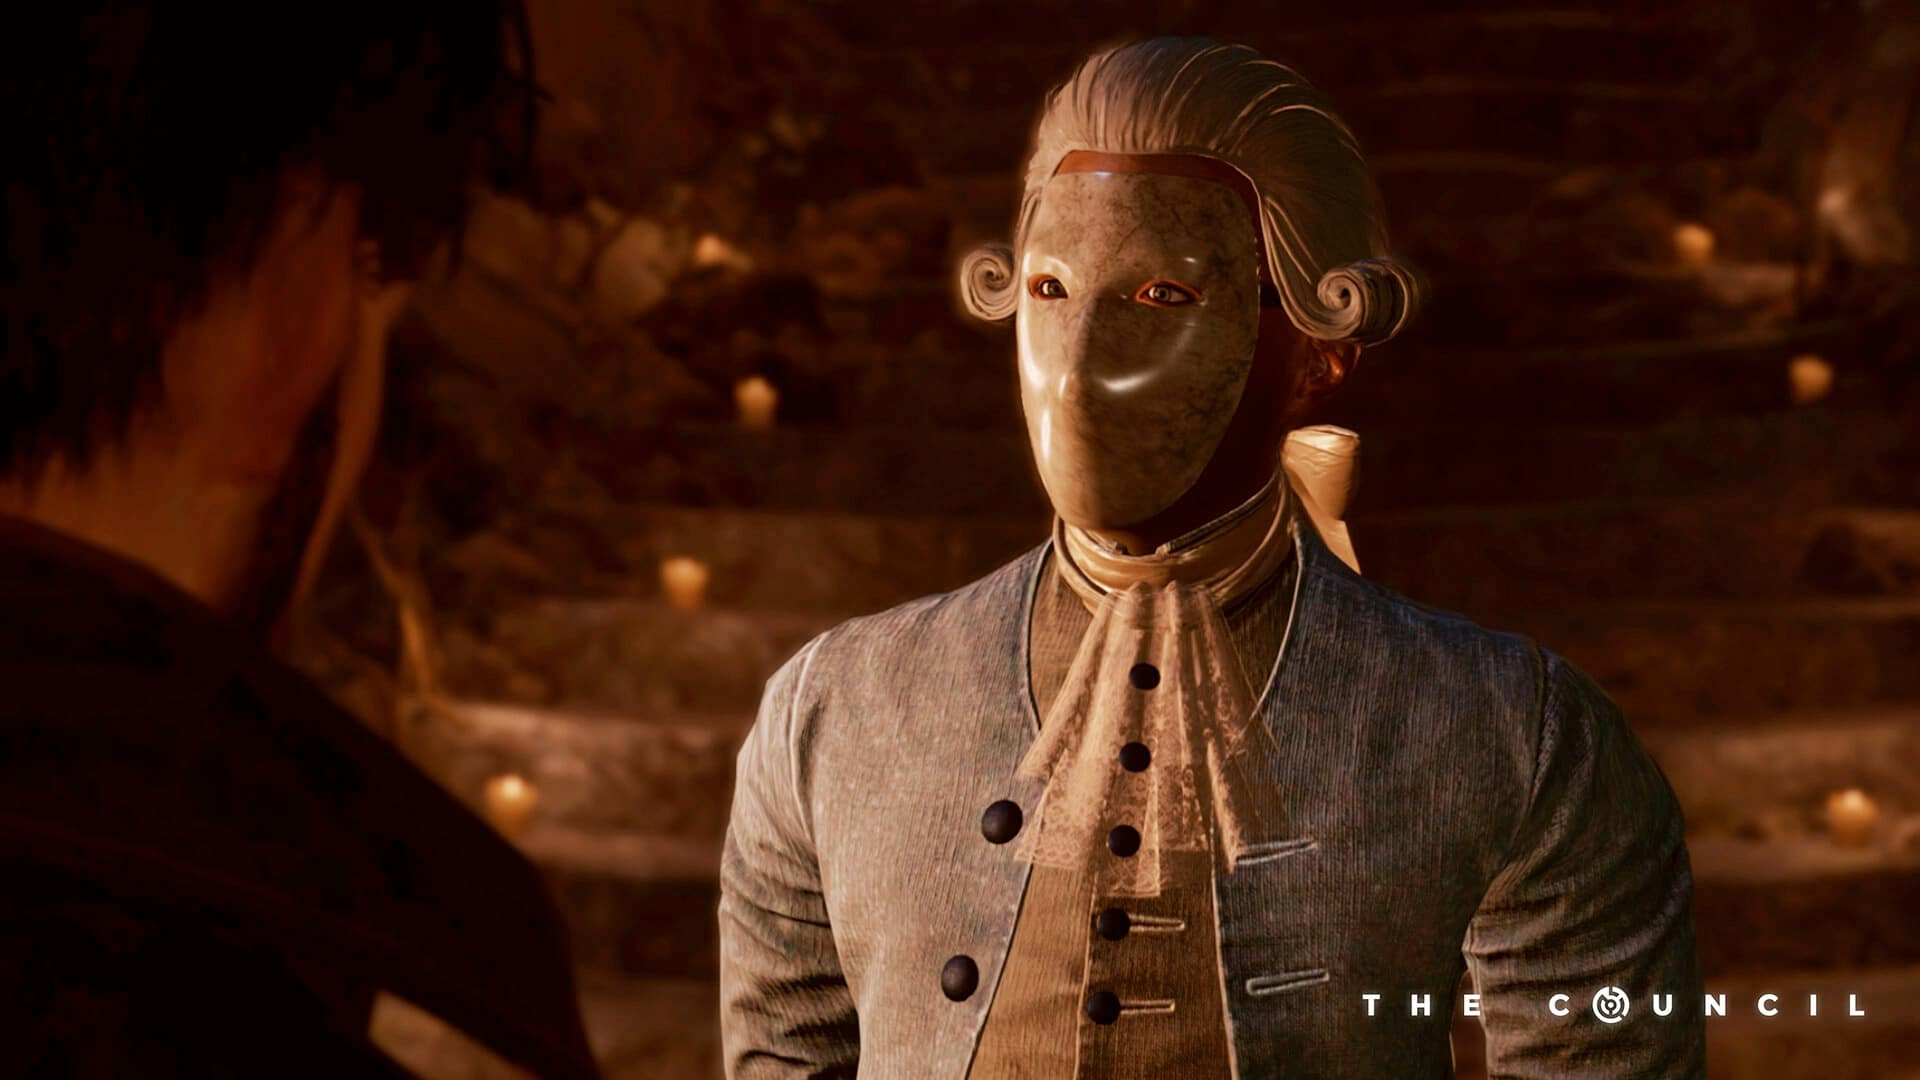 The Council Episode 1 free-to-play